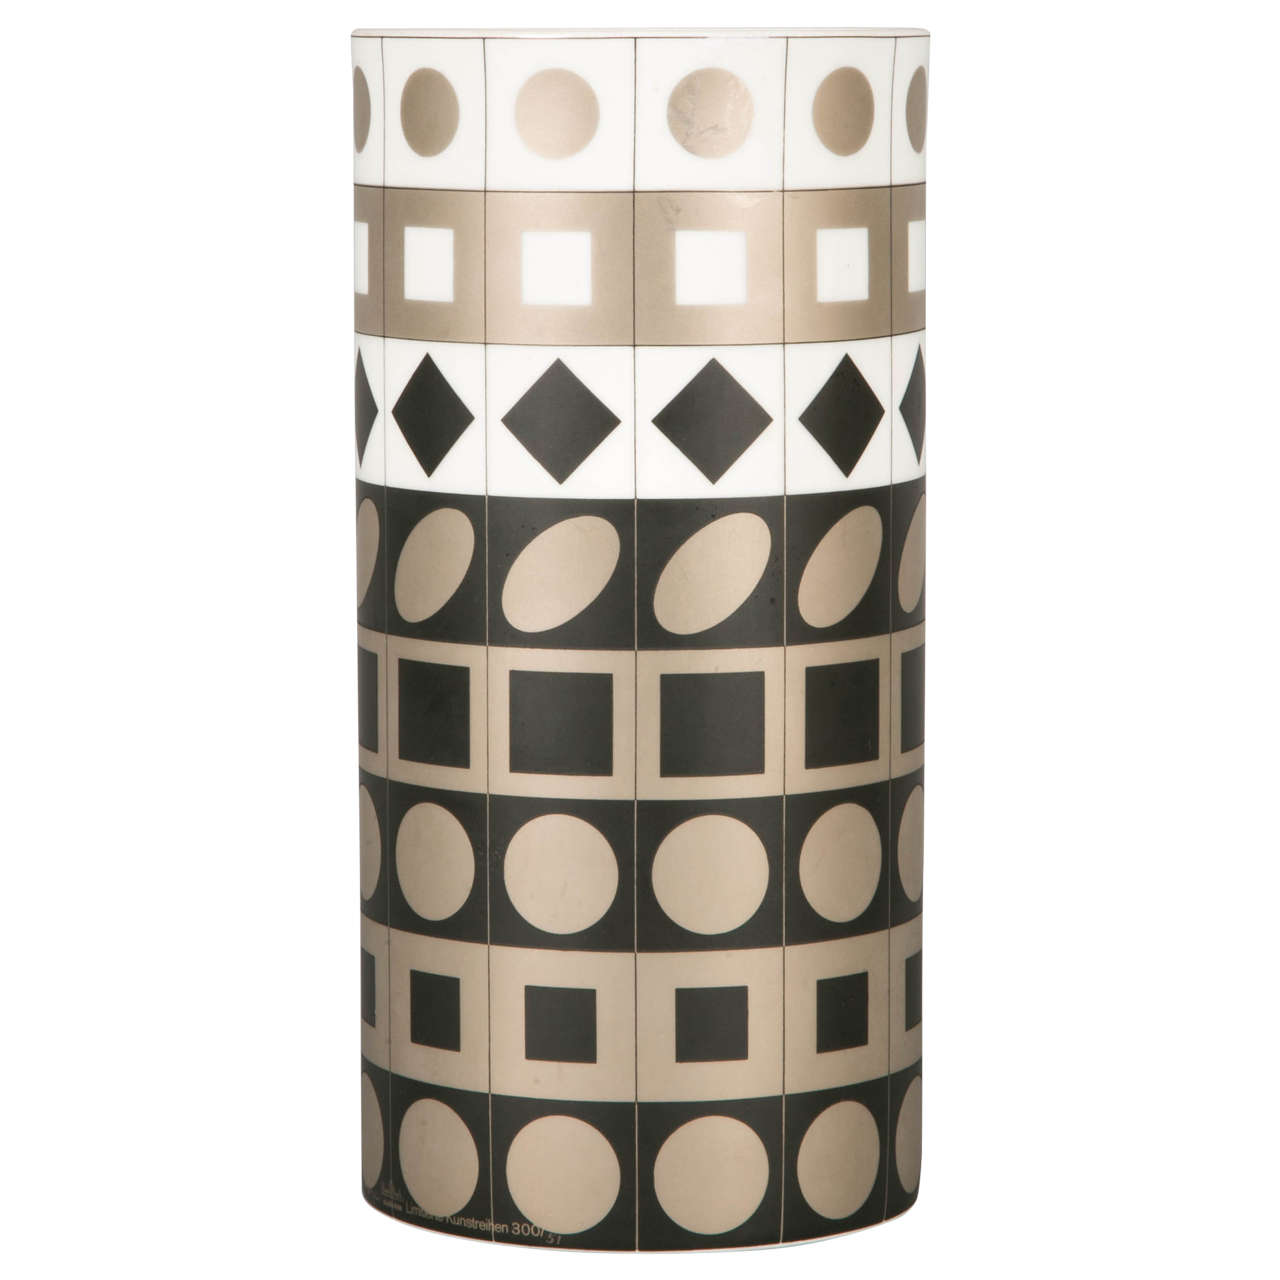 Porcelain Vase by Vasarely for Rosenthal, 1970 For Sale